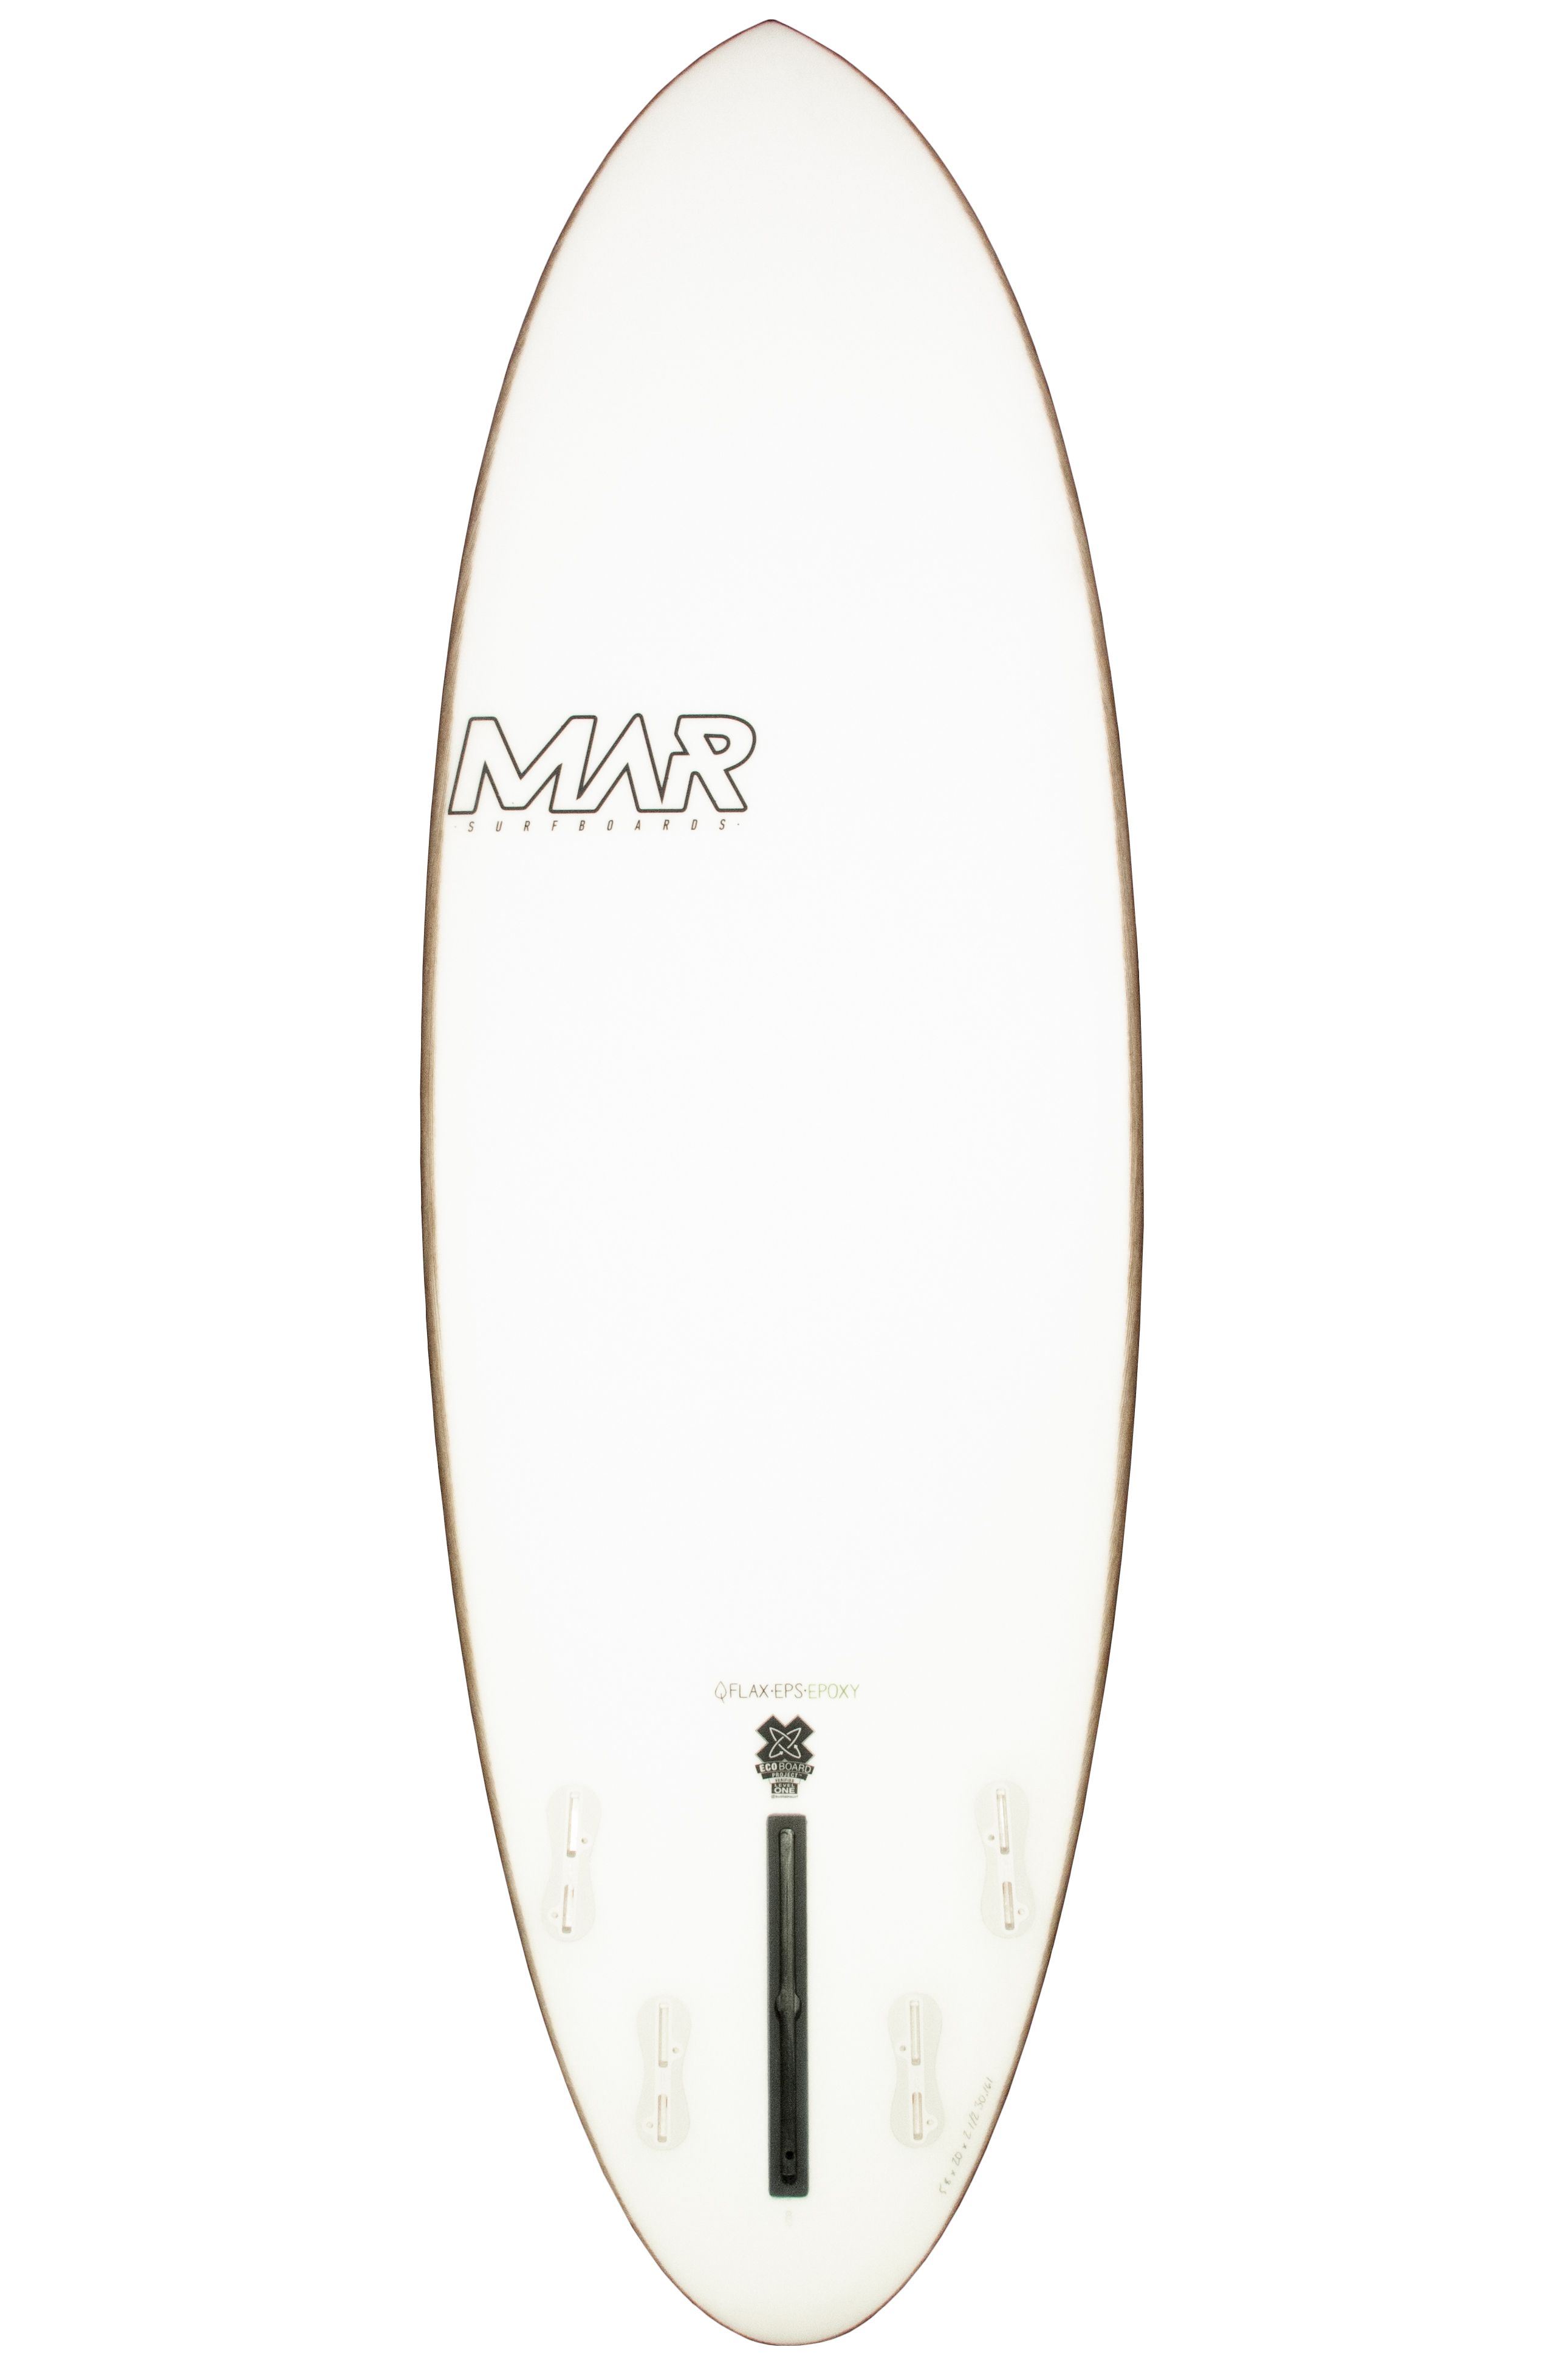 Prancha Surf Mar THE 1 2 4 5'10 Round Pin Tail - Color 4 + 1 5ft10